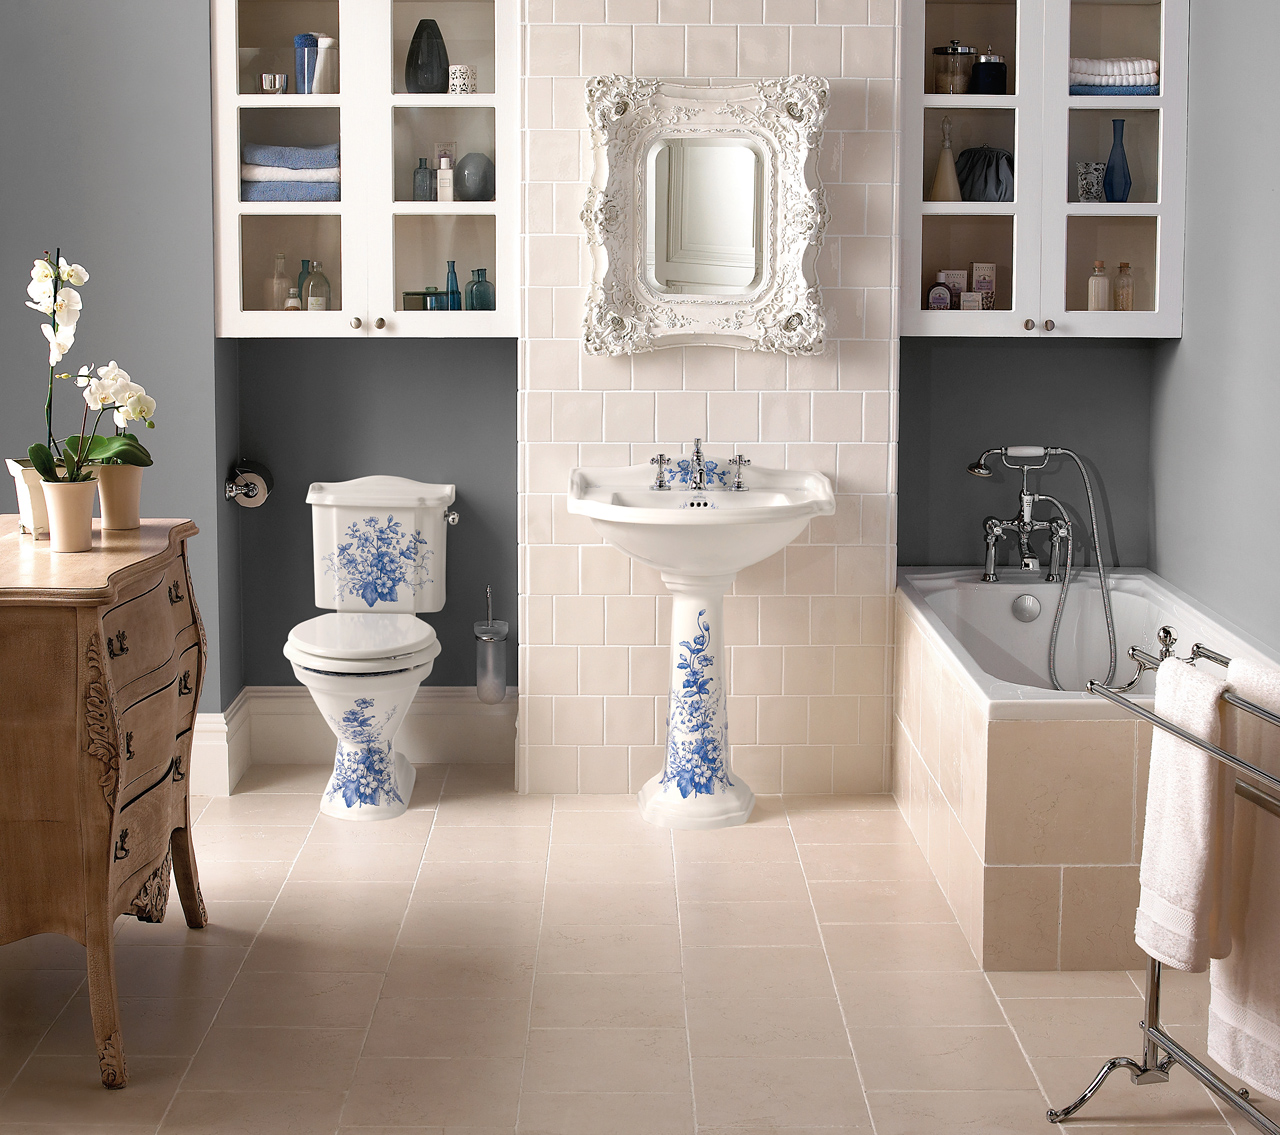 Classic Bathrooms: Imperial Bathrooms - Ox-dec-final-main